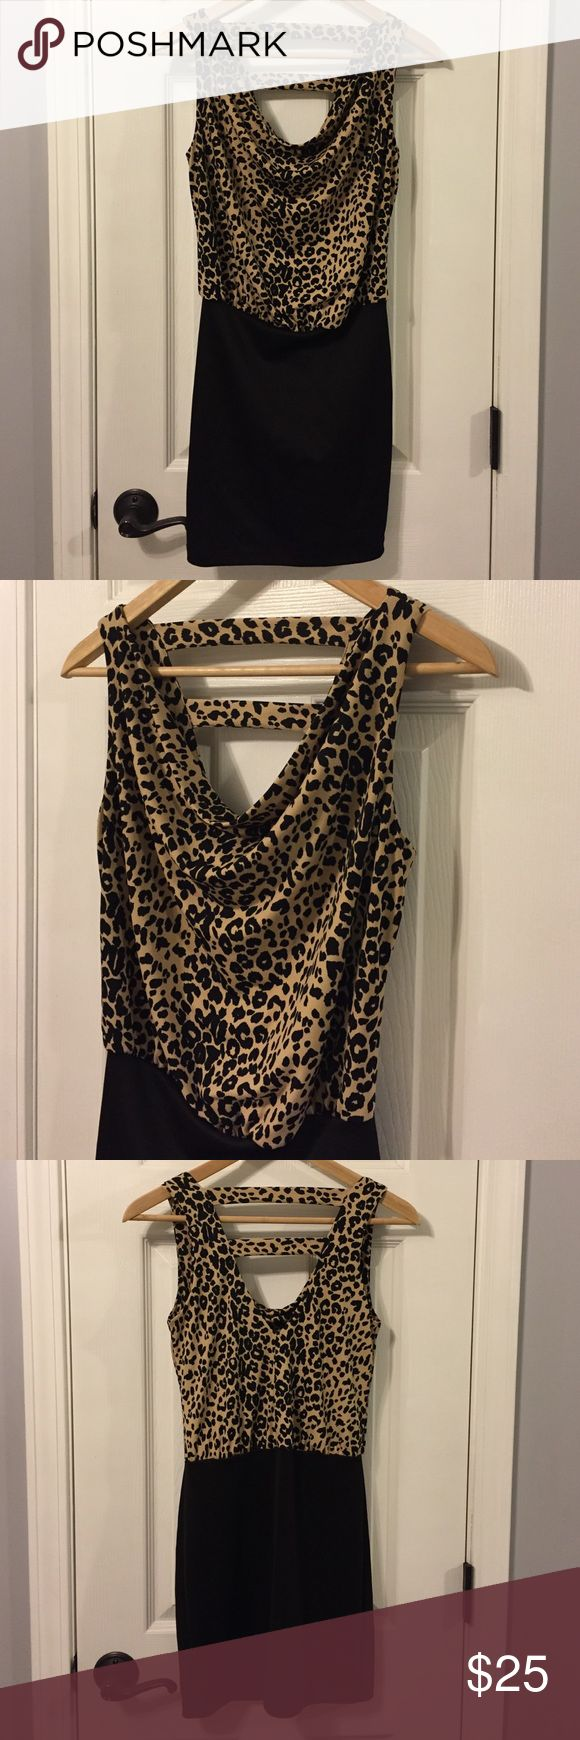 Animal Print & Black Dress This is a great dress for going out!! Very form fitting and fun! The front has a draped neck and the back is fairly open. 🎉Love the item but don't like the price? Make me a reasonable offer! 🎉 Body Central Dresses